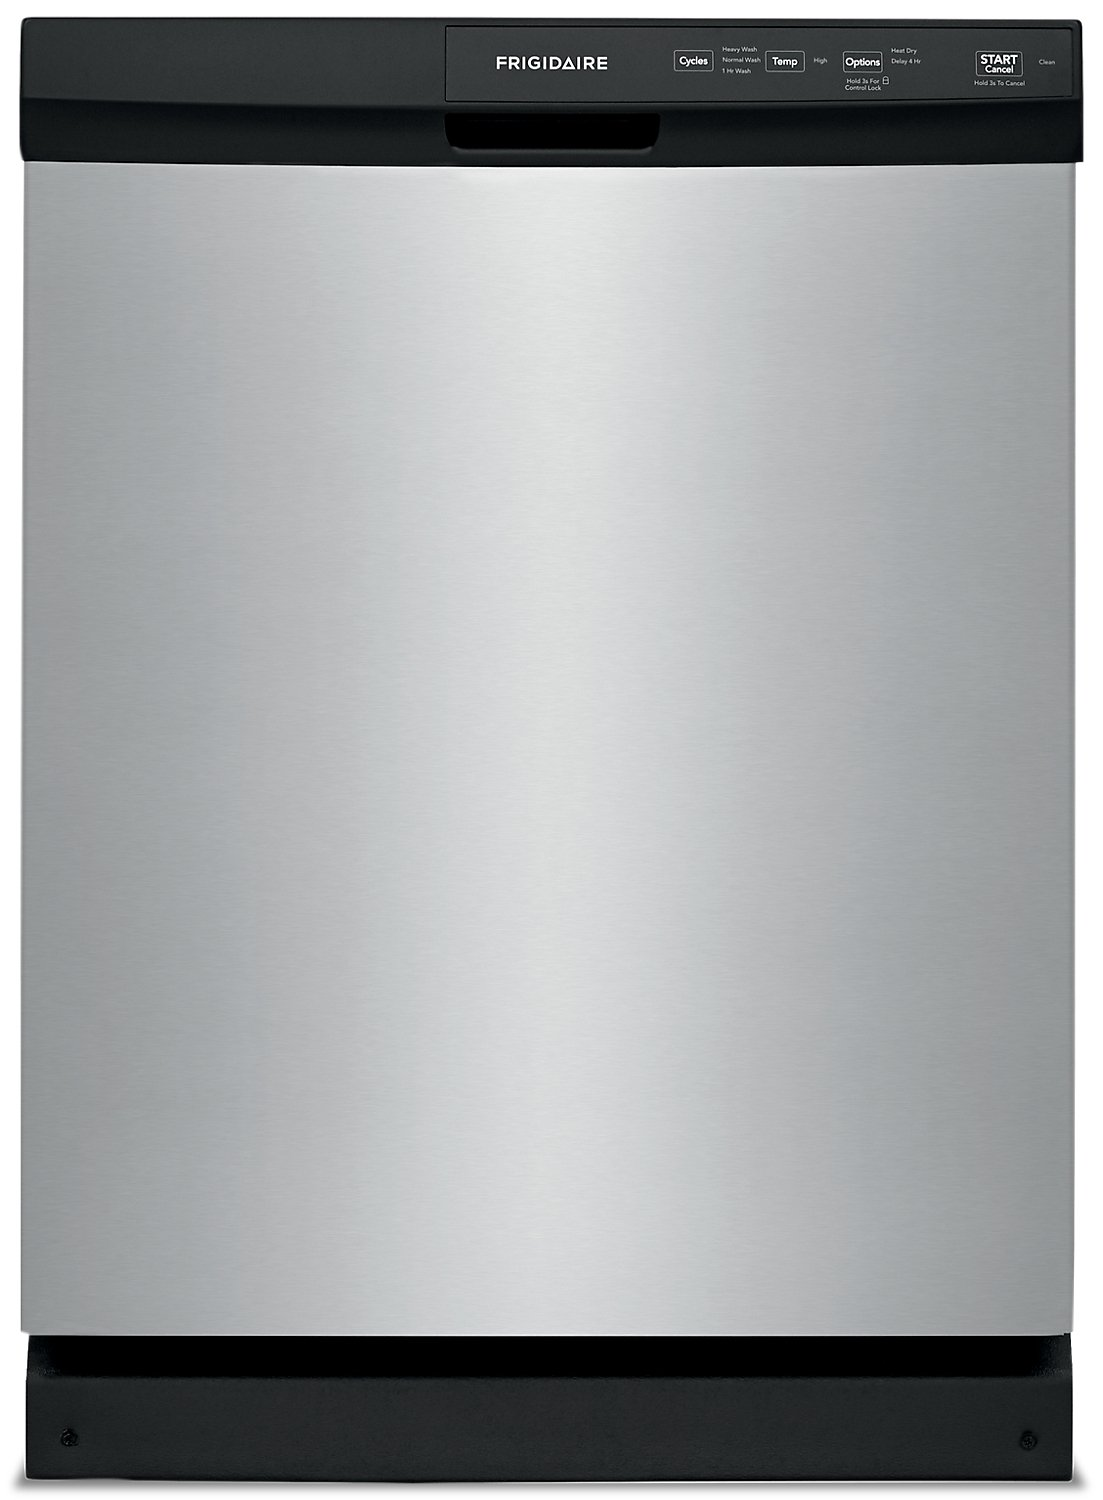 Frigidaire Dishwasher 24 FFCD2413U in Stainless Steel color showcased by Corbeil Electro Store